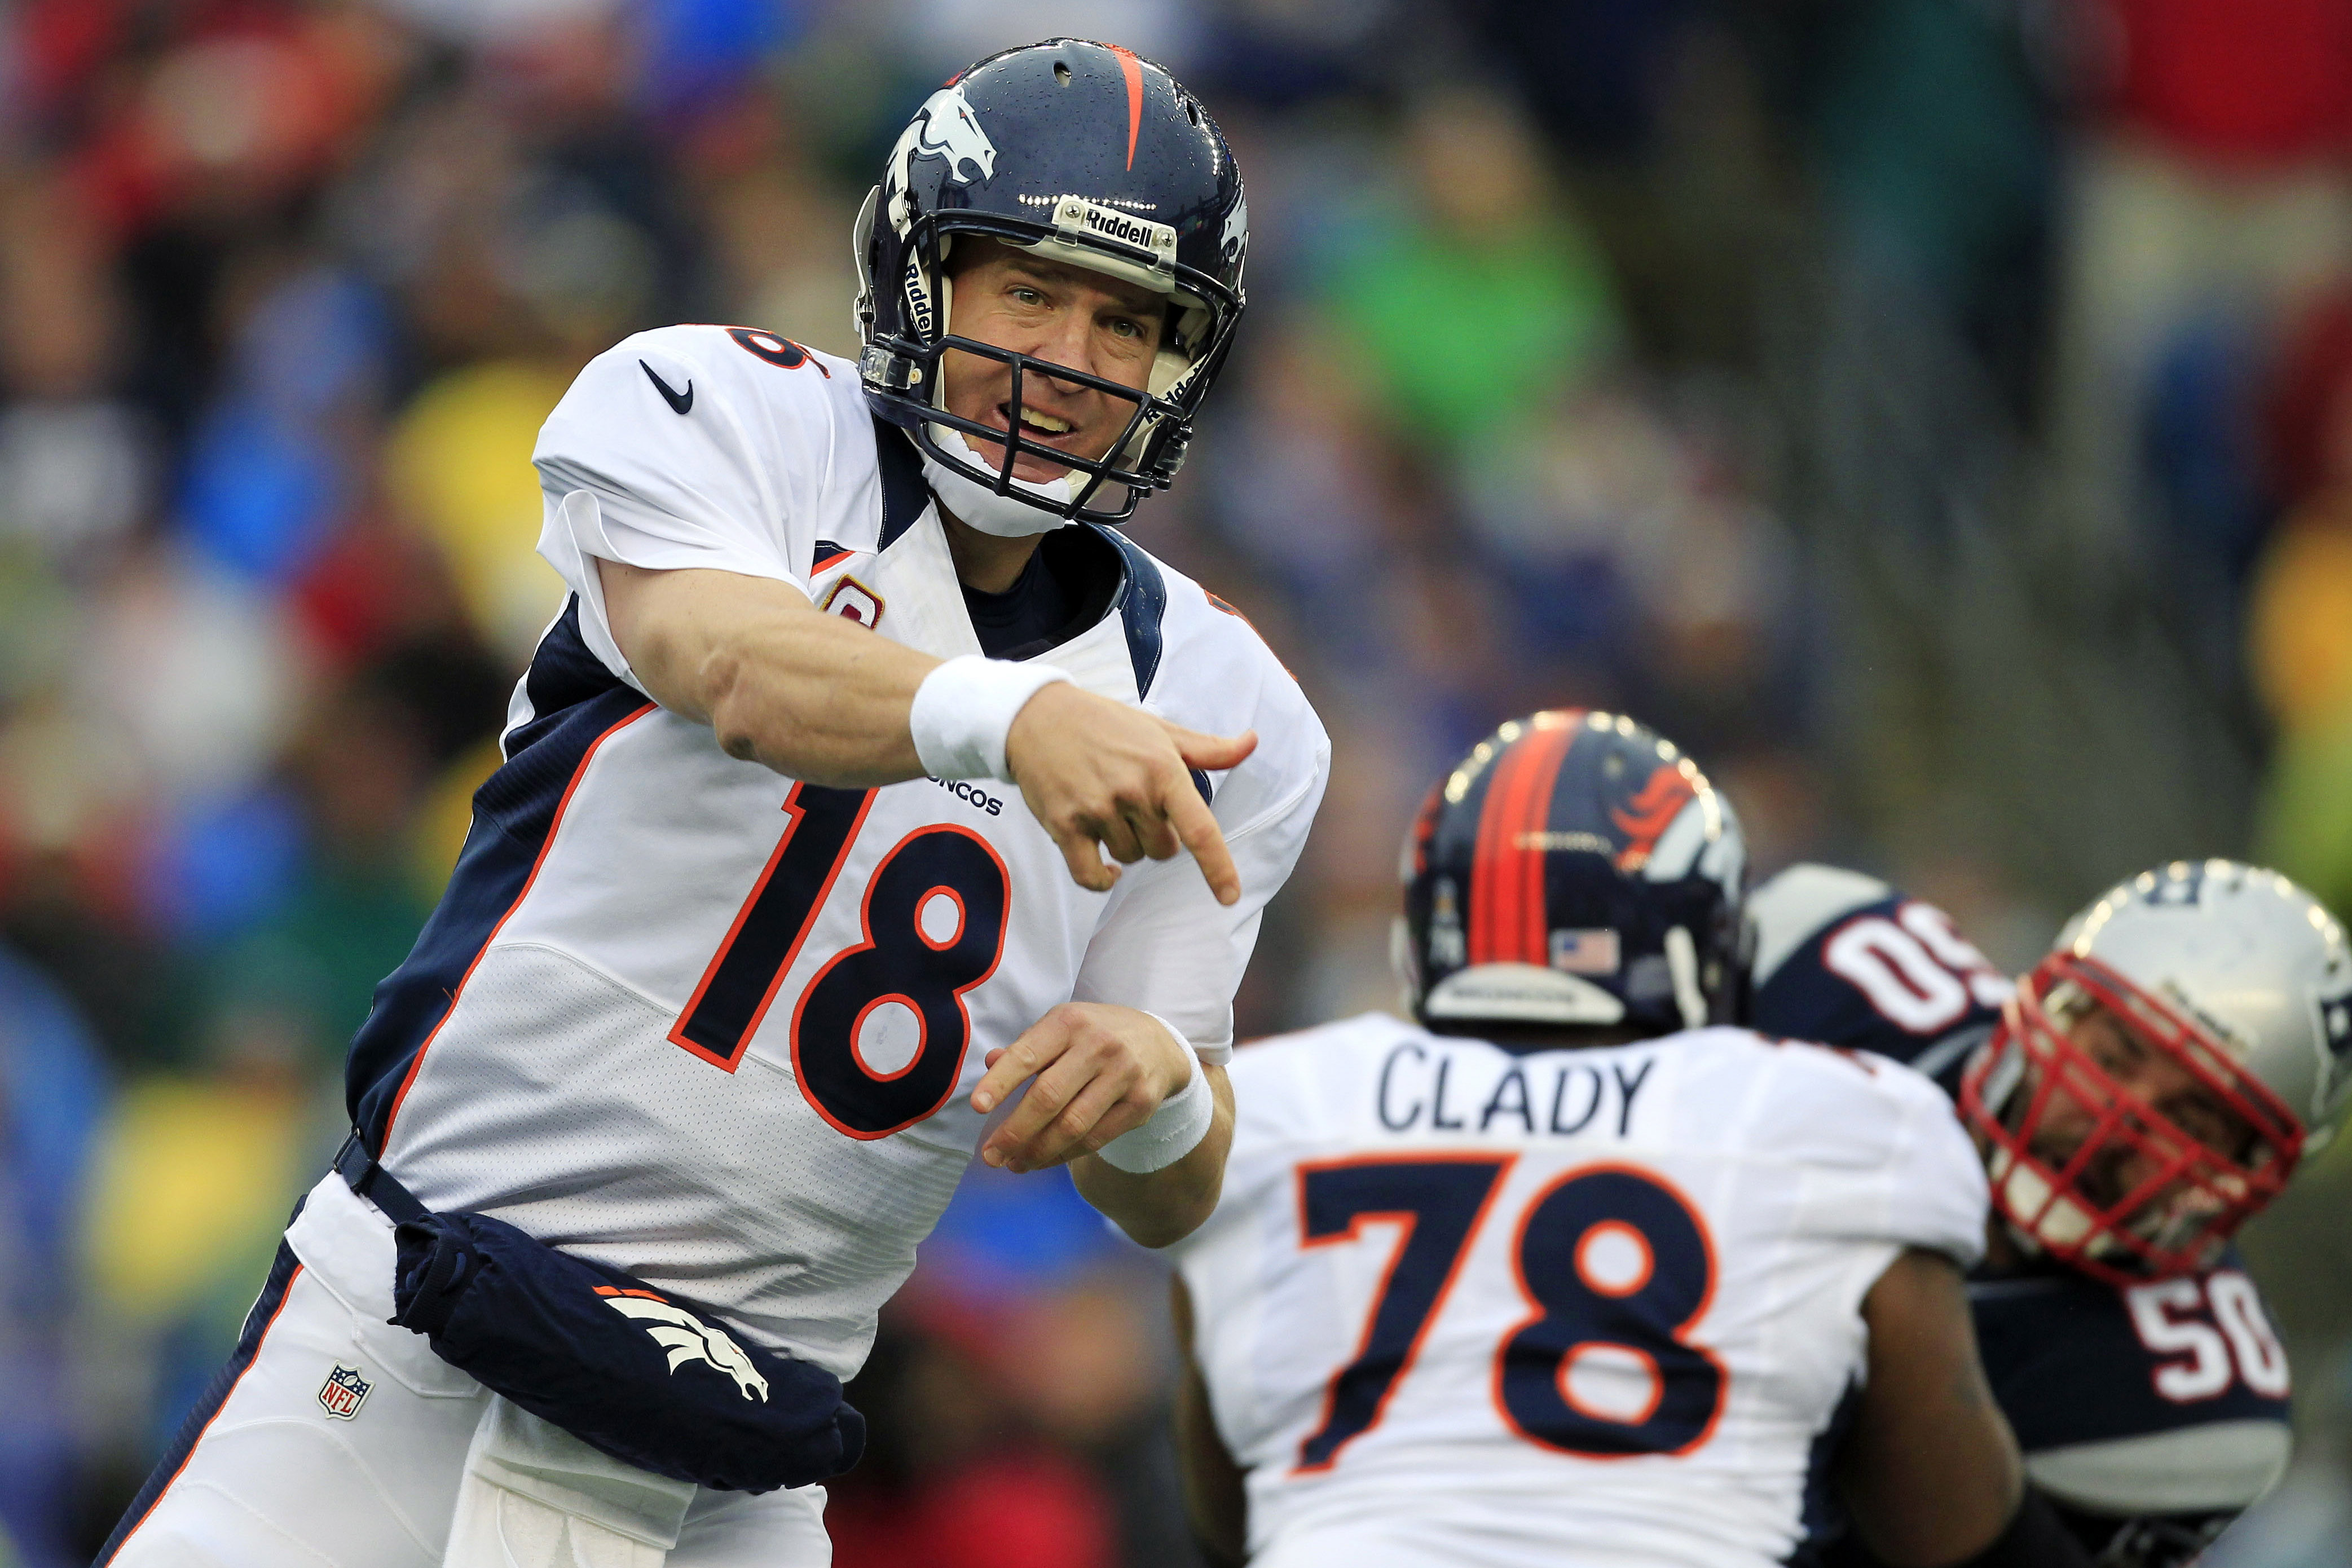 FILE - In this Sunday, Oct. 7, 2012 file photo, Denver Broncos quarterback Peyton Manning (18) follows through on a pass as tackle Ryan Clady (78) blocks New England Patriots defensive end Rob Ninkovich (50) in the first half of an NFL football game in Fo